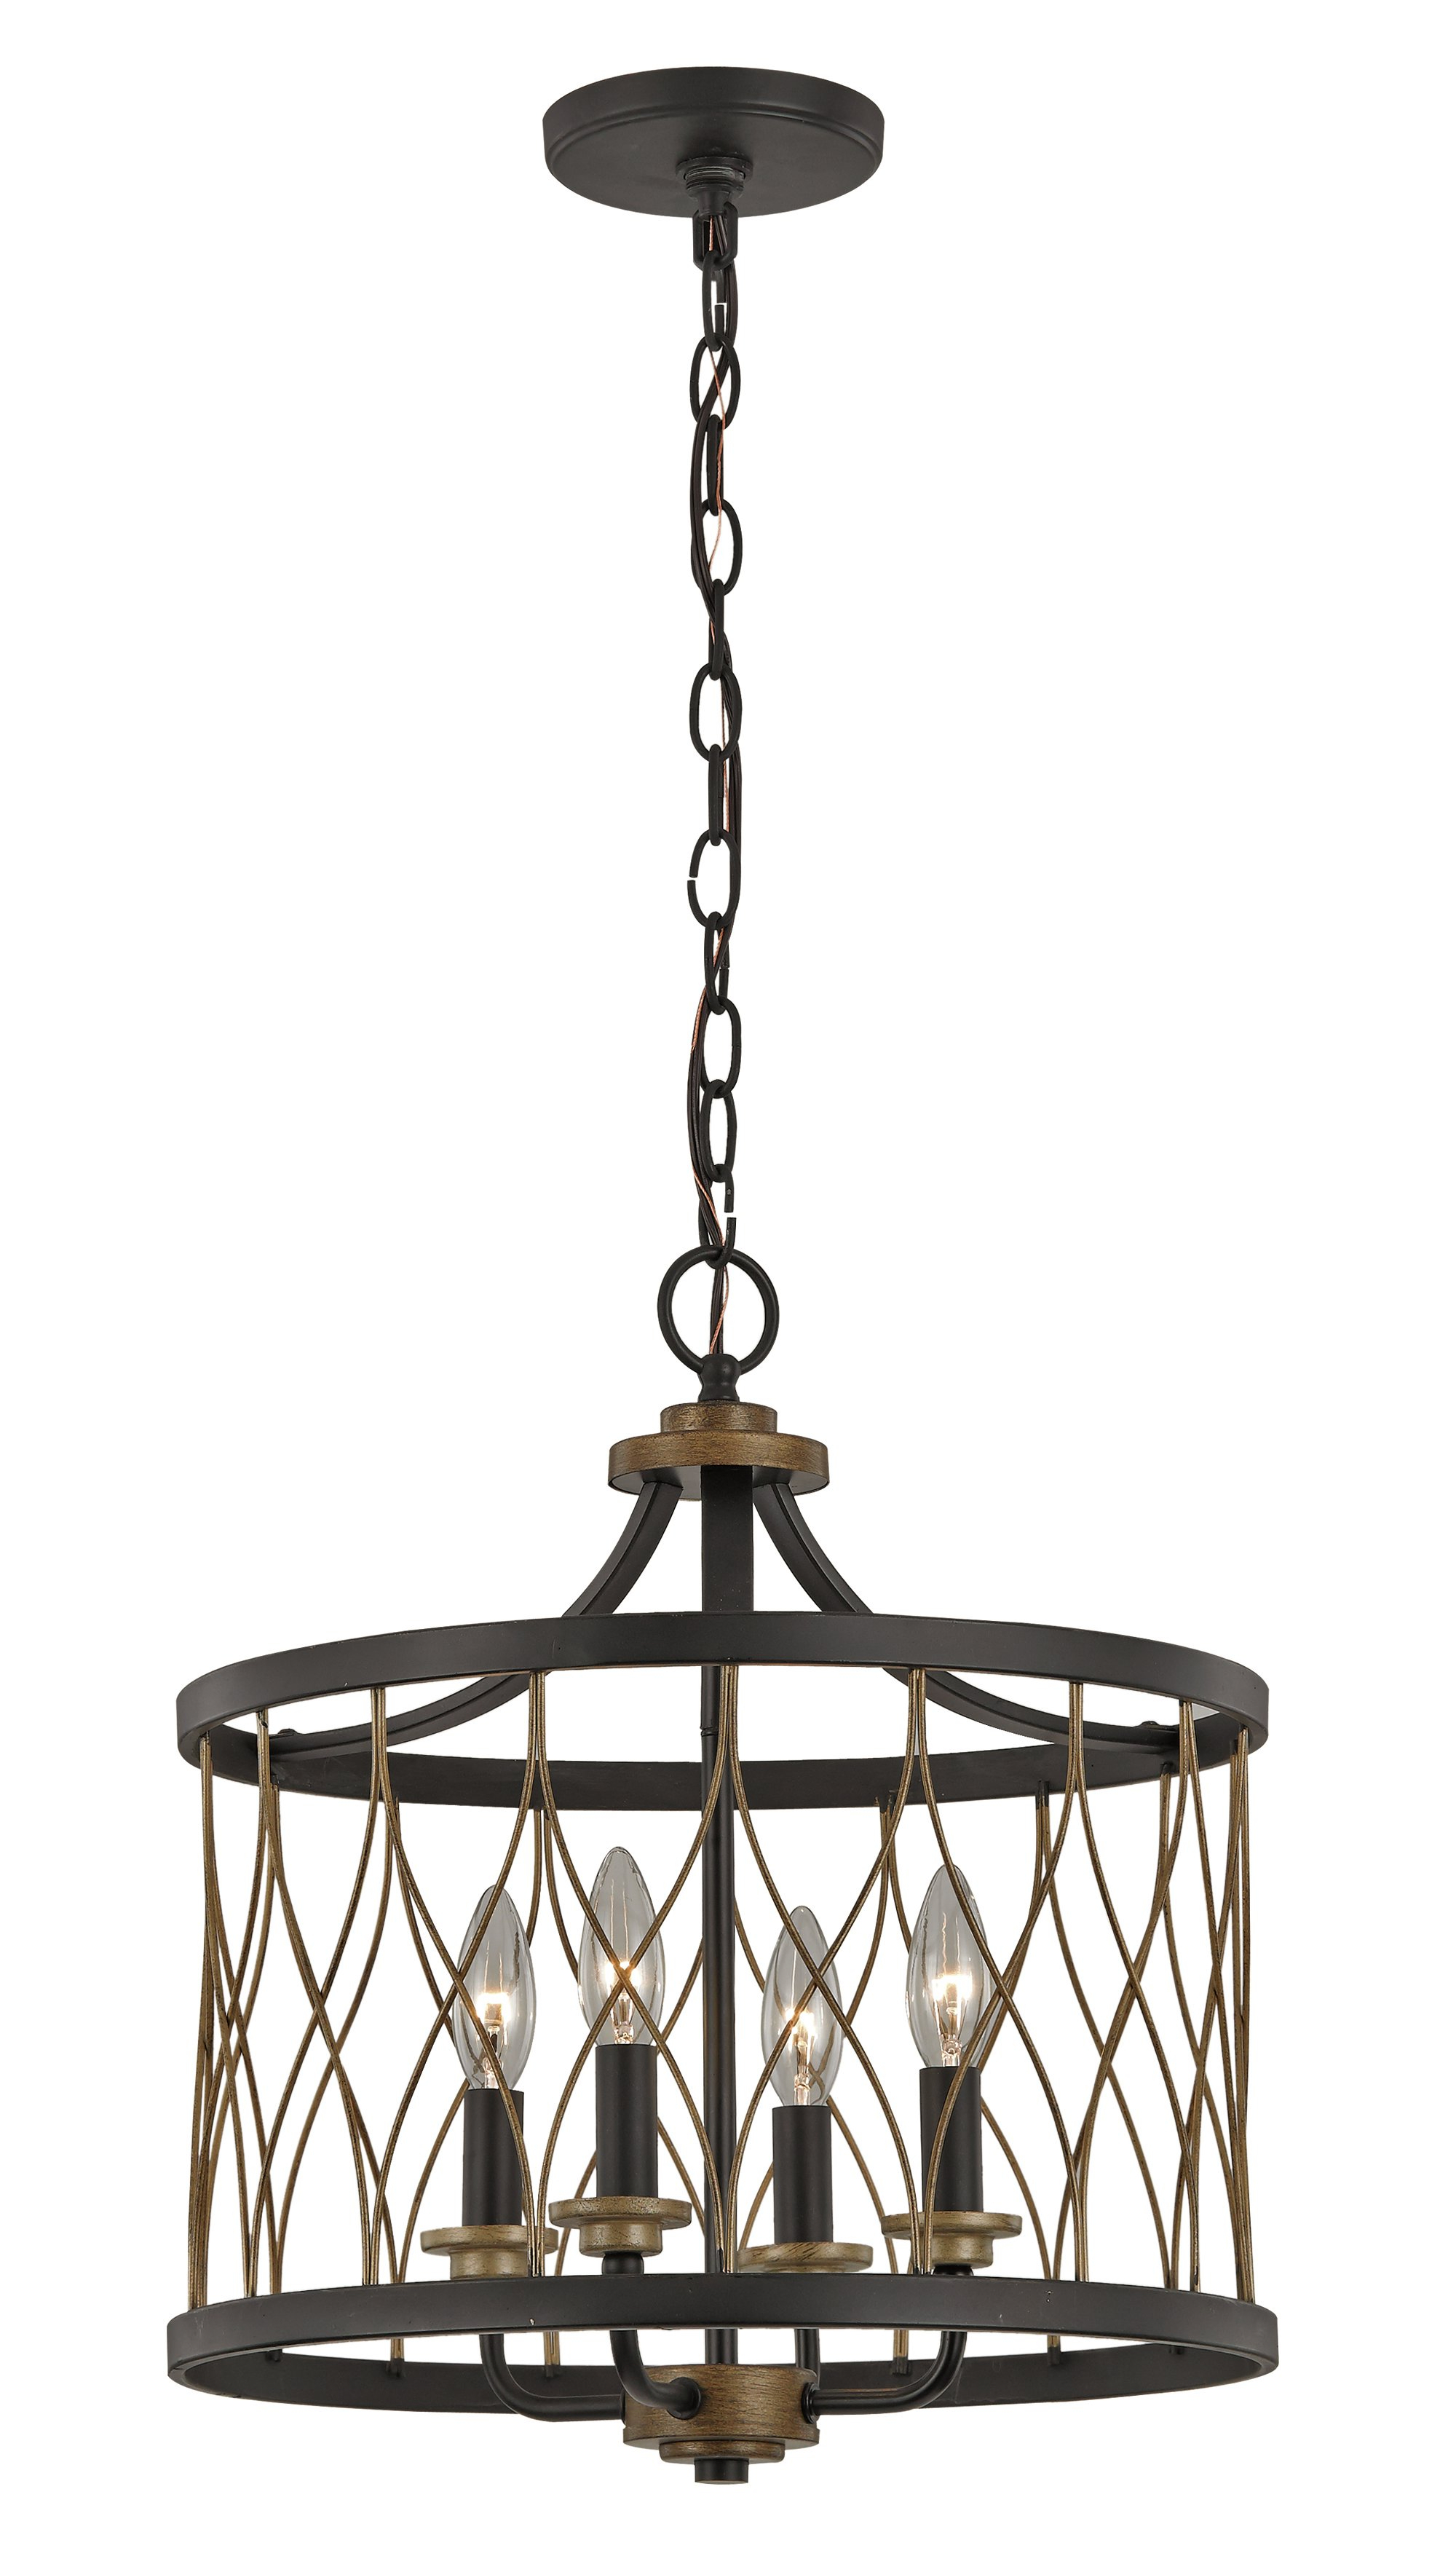 Emaria 3 Light Single Drum Pendants With Regard To Most Recent Drum Pendant With Chain (View 15 of 25)